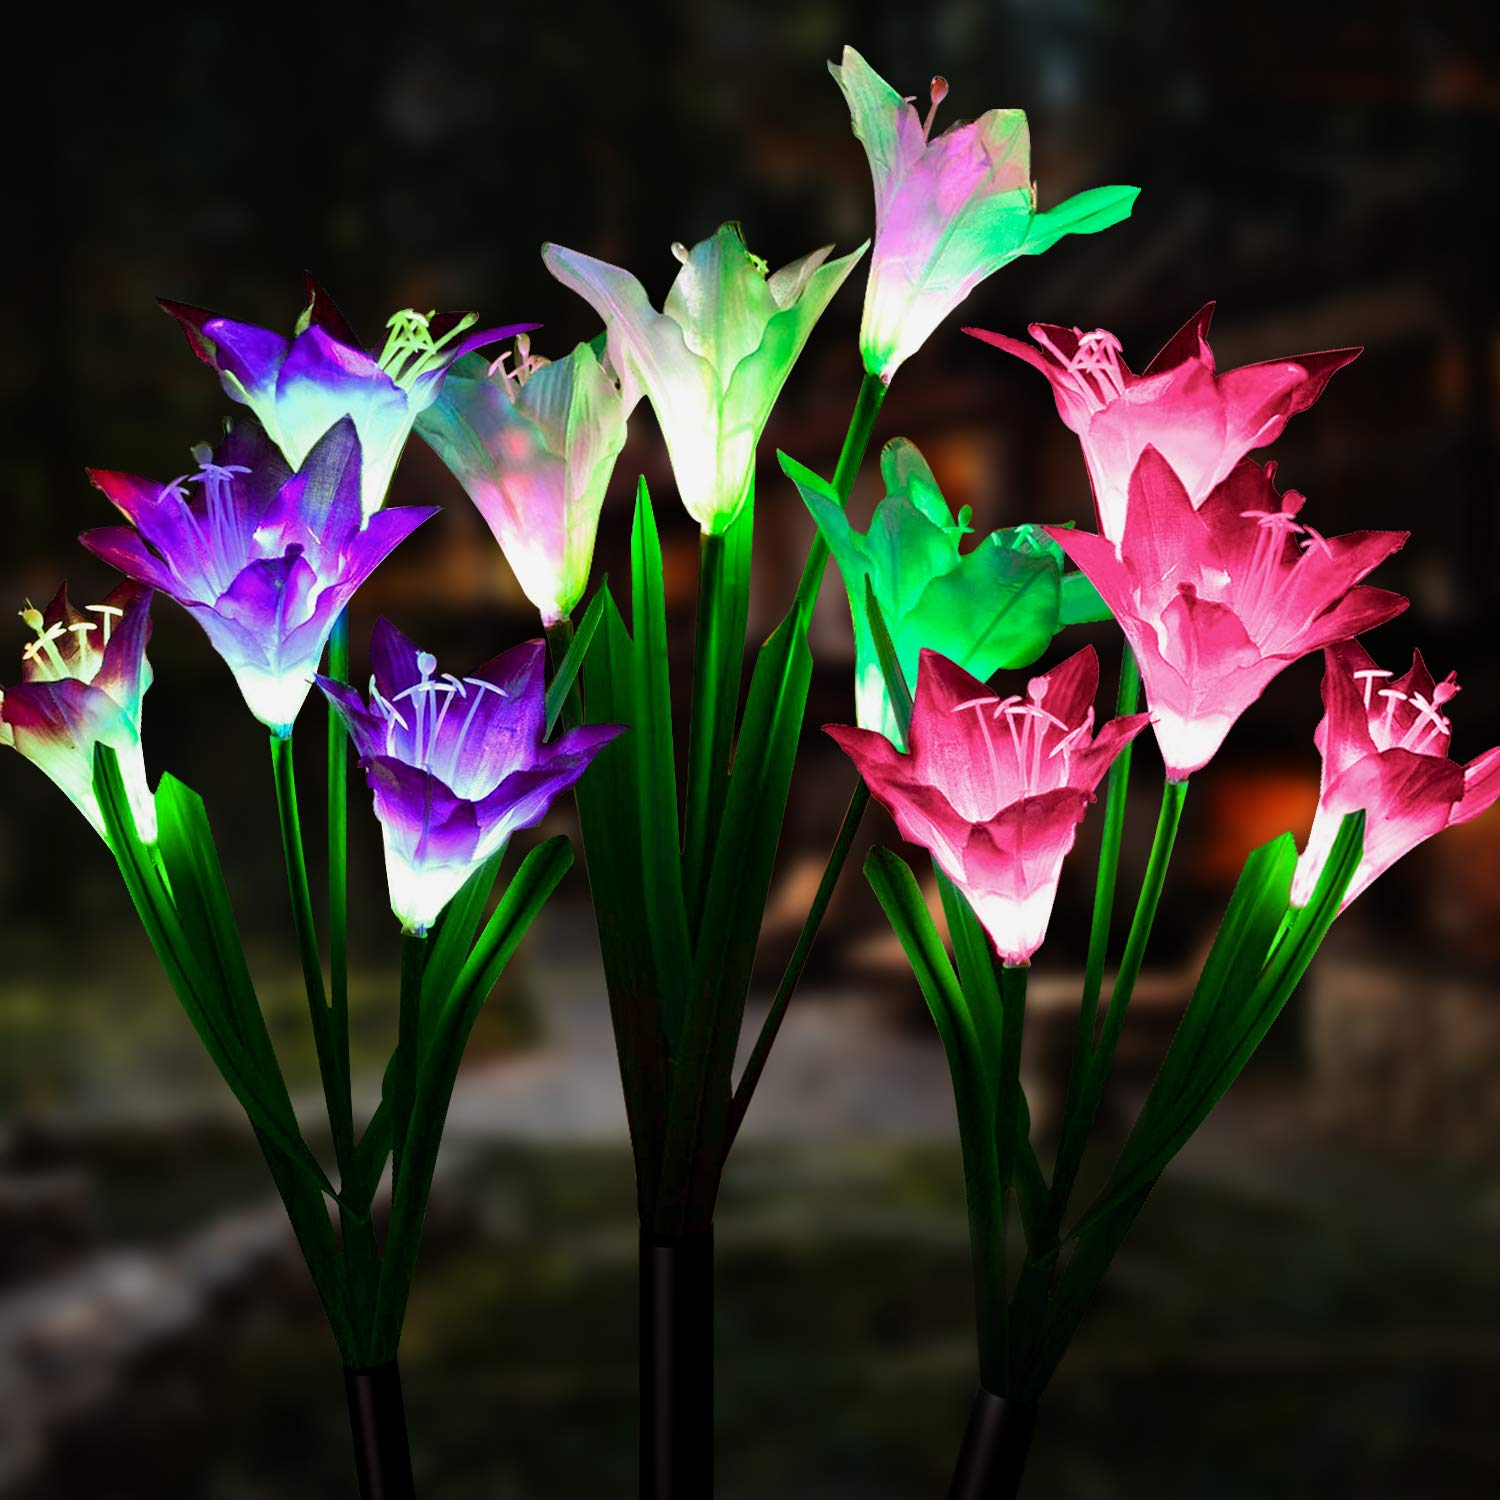 Solar Lights Outdoor [3 Pack] - WdtPro Upgraded Waterproof Solar Garden Lights with 12 Lily Flower - 7 Color Changing Solar Landscape Decorative Lights for Garden, Patio(Purple, White & Pink)